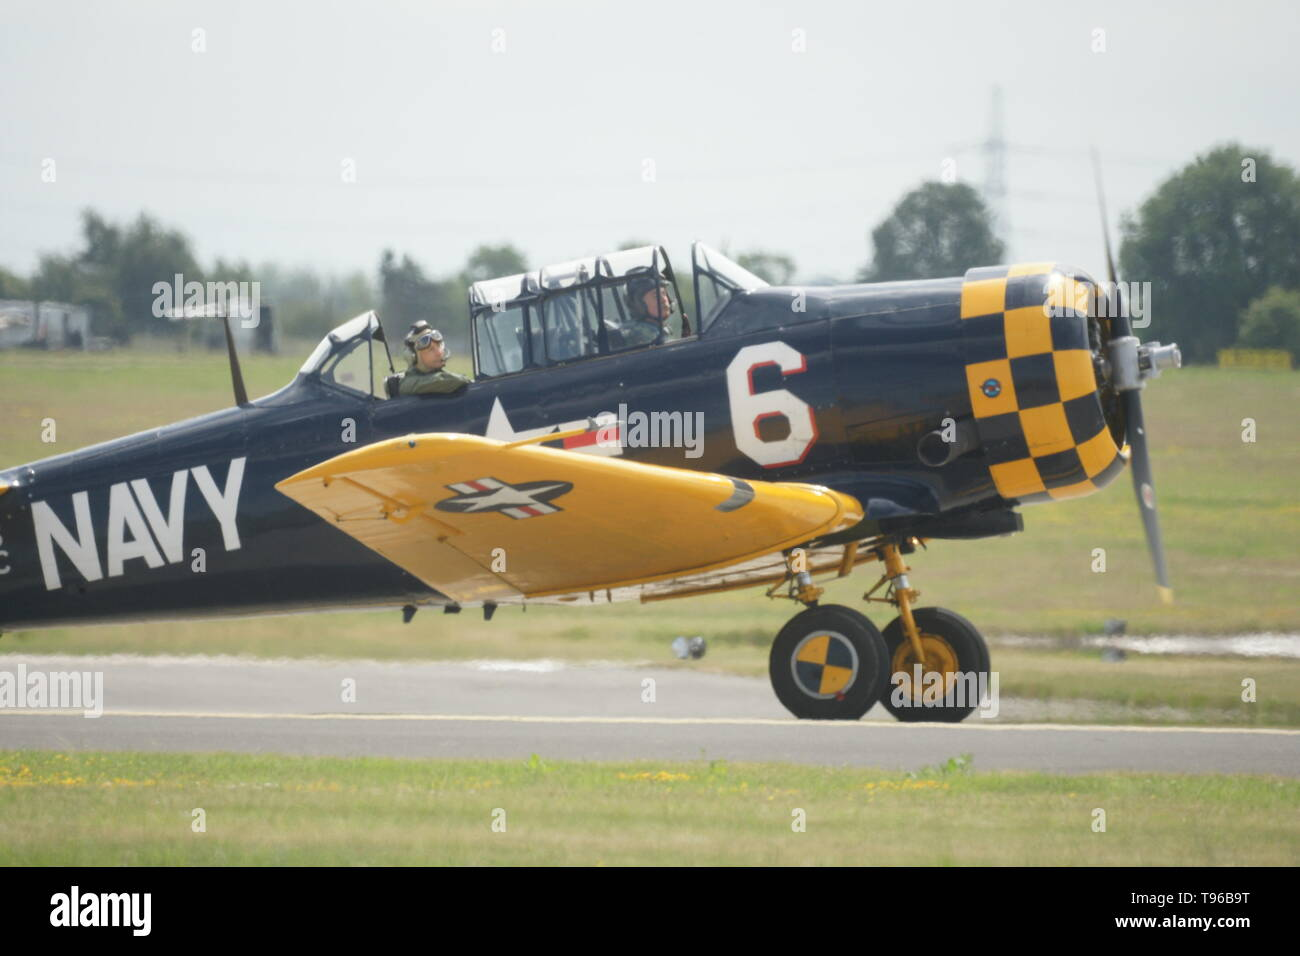 North American Aviation T-6 Harvard single-engined WW2 advanced trainer aircraft - Stock Image